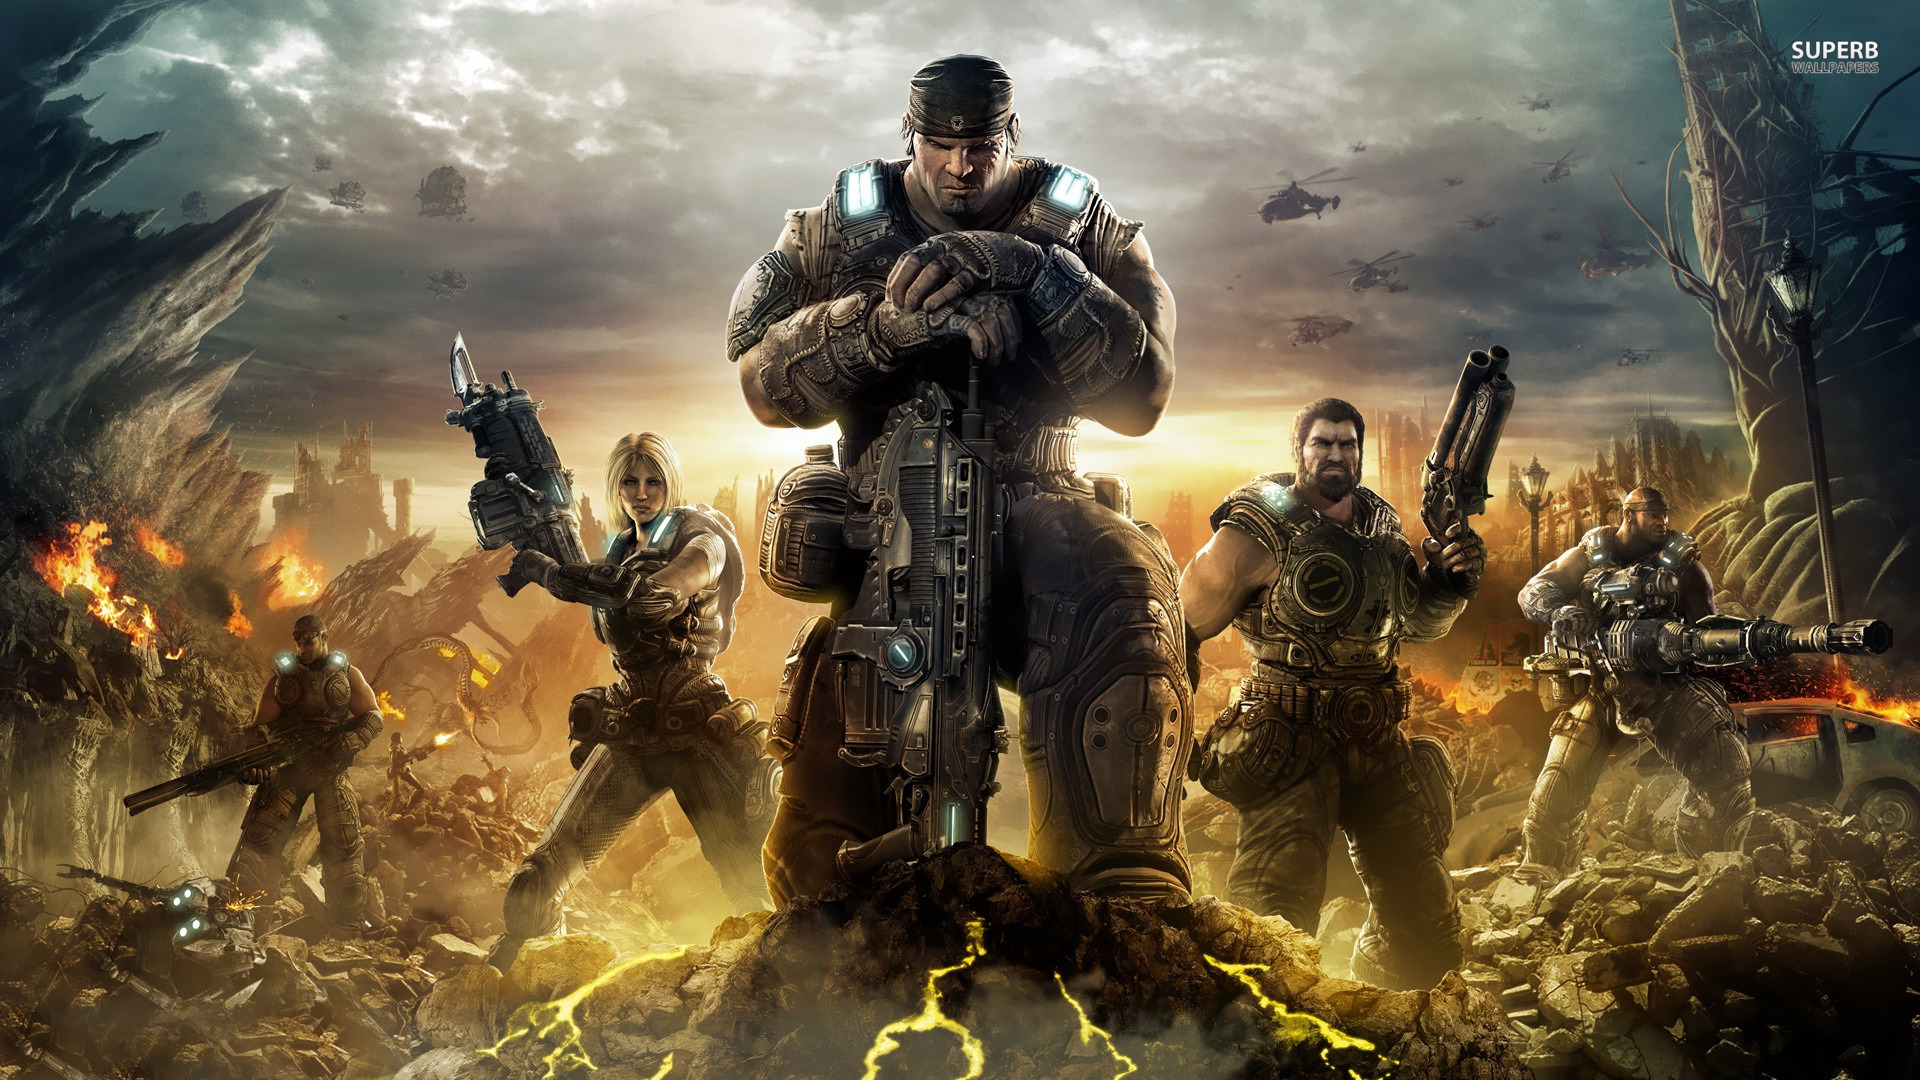 Gears of War 4 and Gears of War: Ultimate Edition Revealed